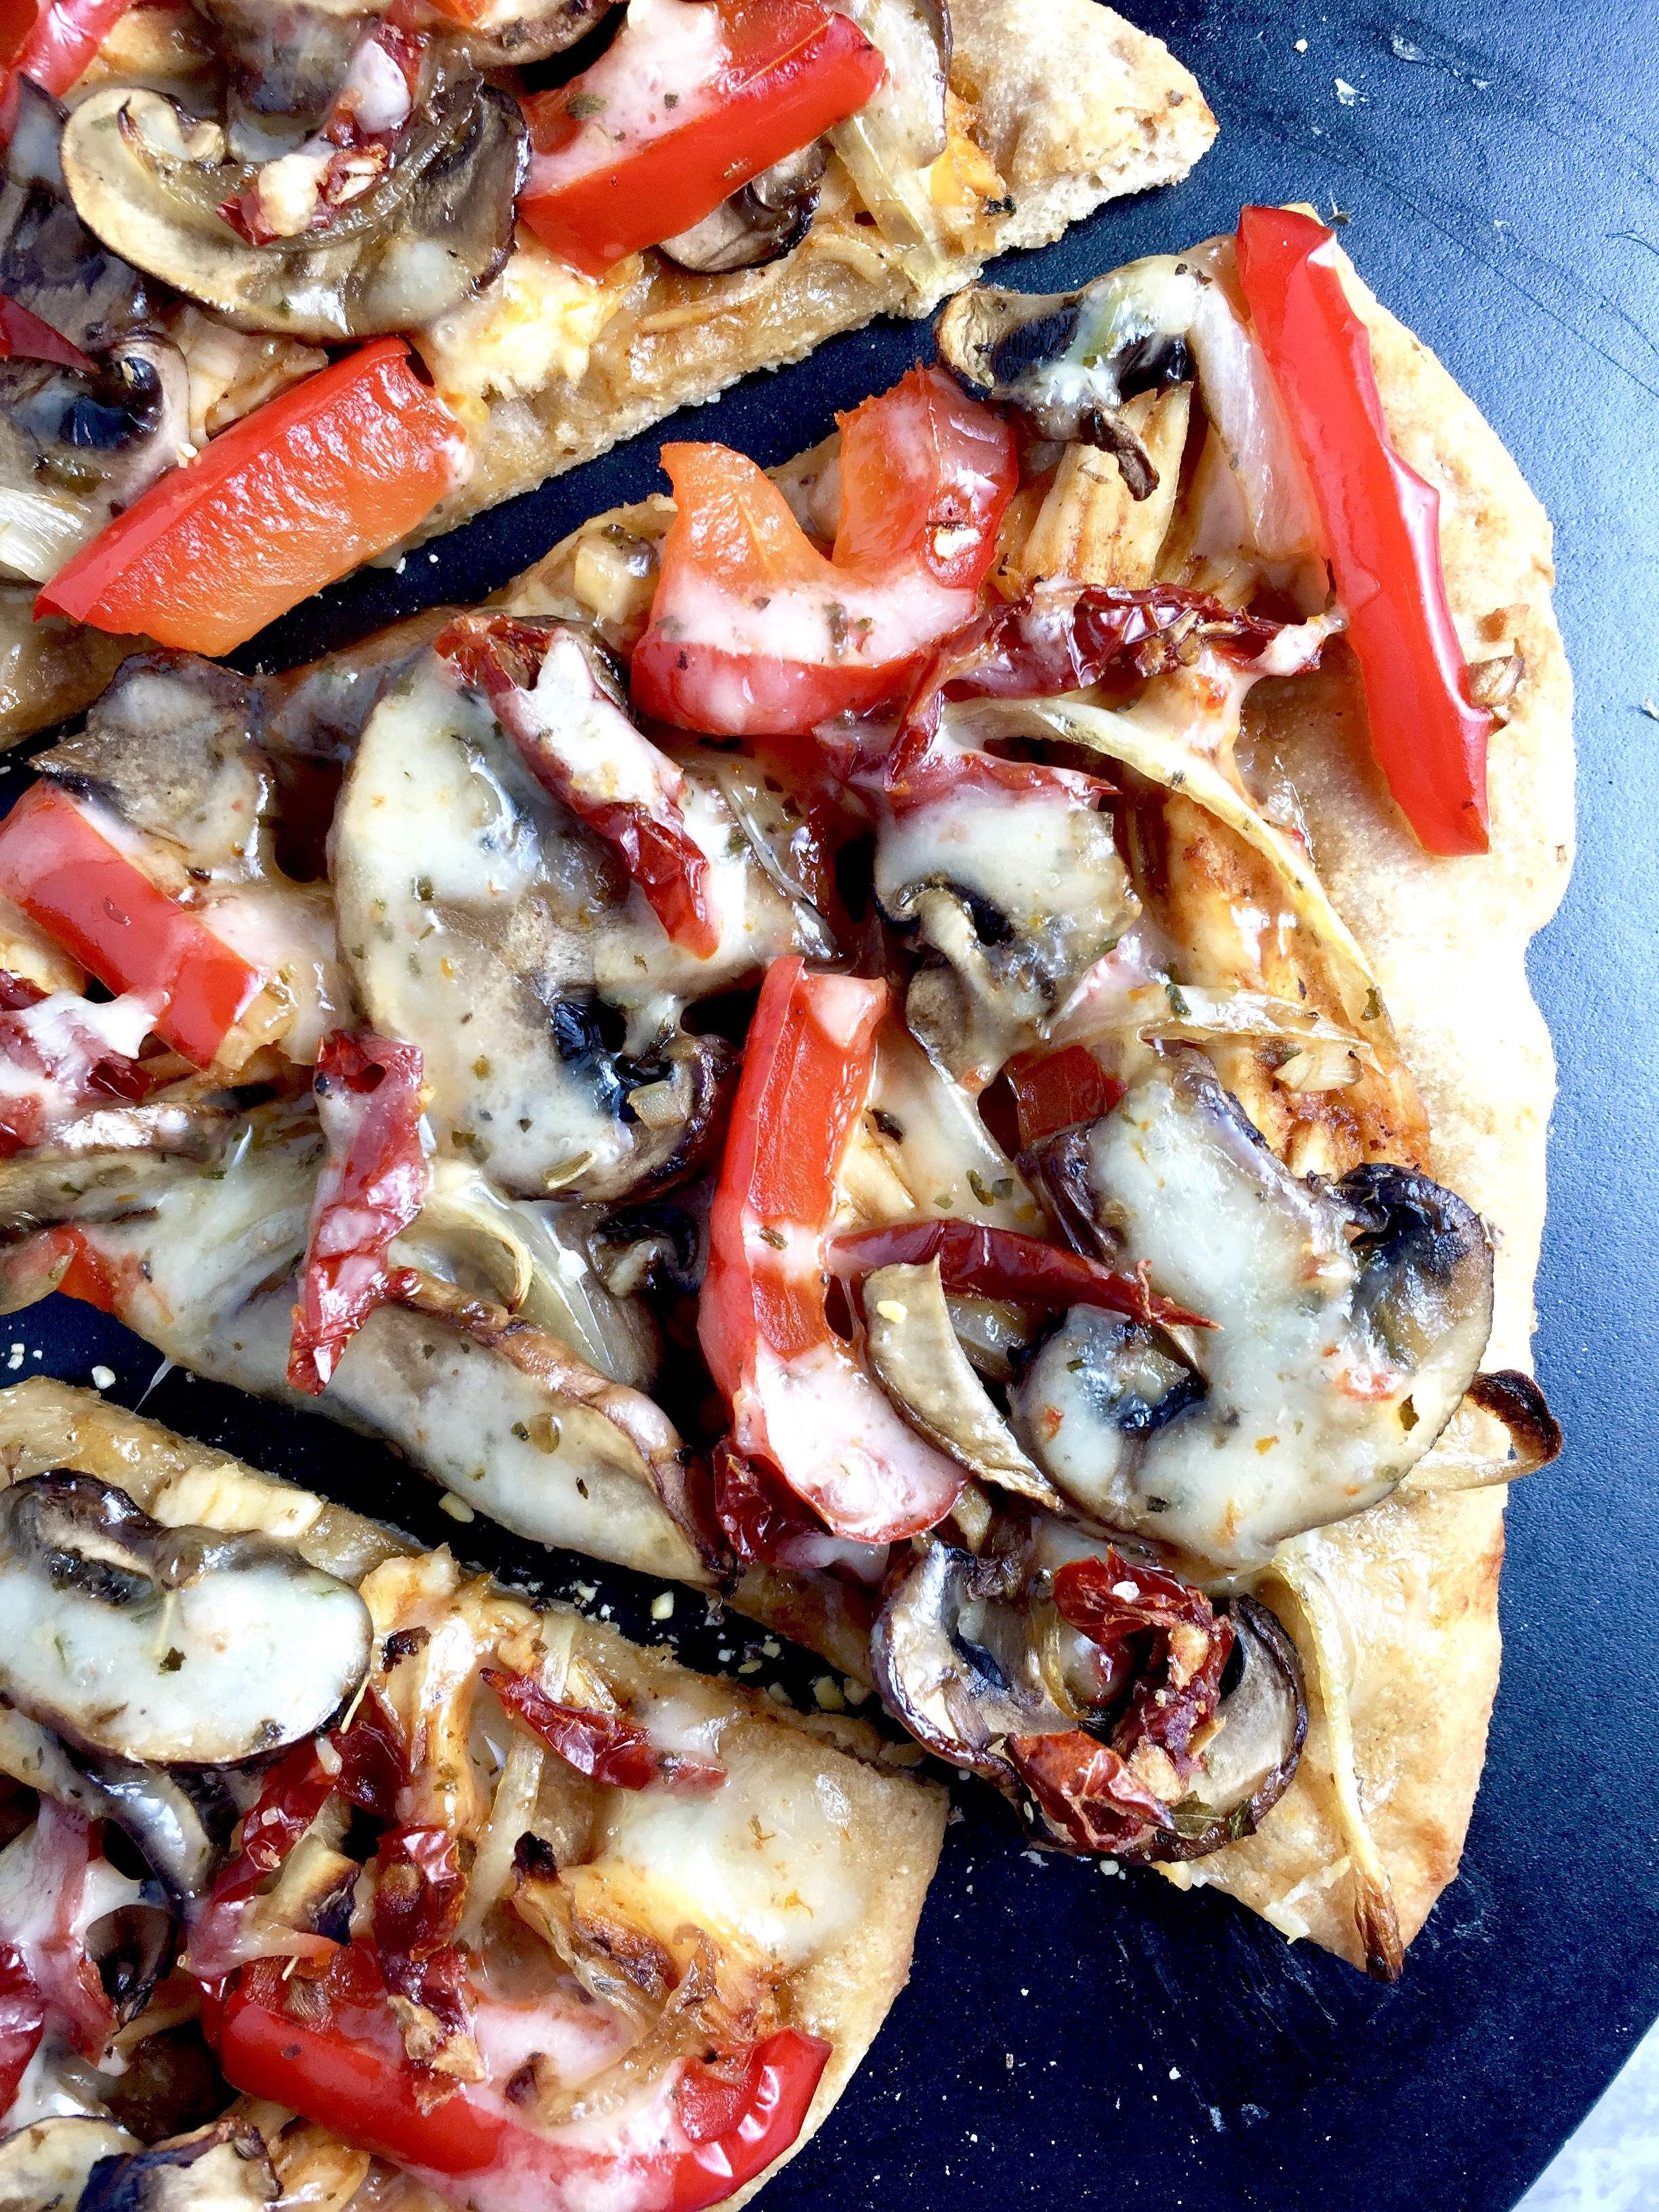 BBQ Chicken Sun-Dried Tomato Pizza with Whole Wheat Crust